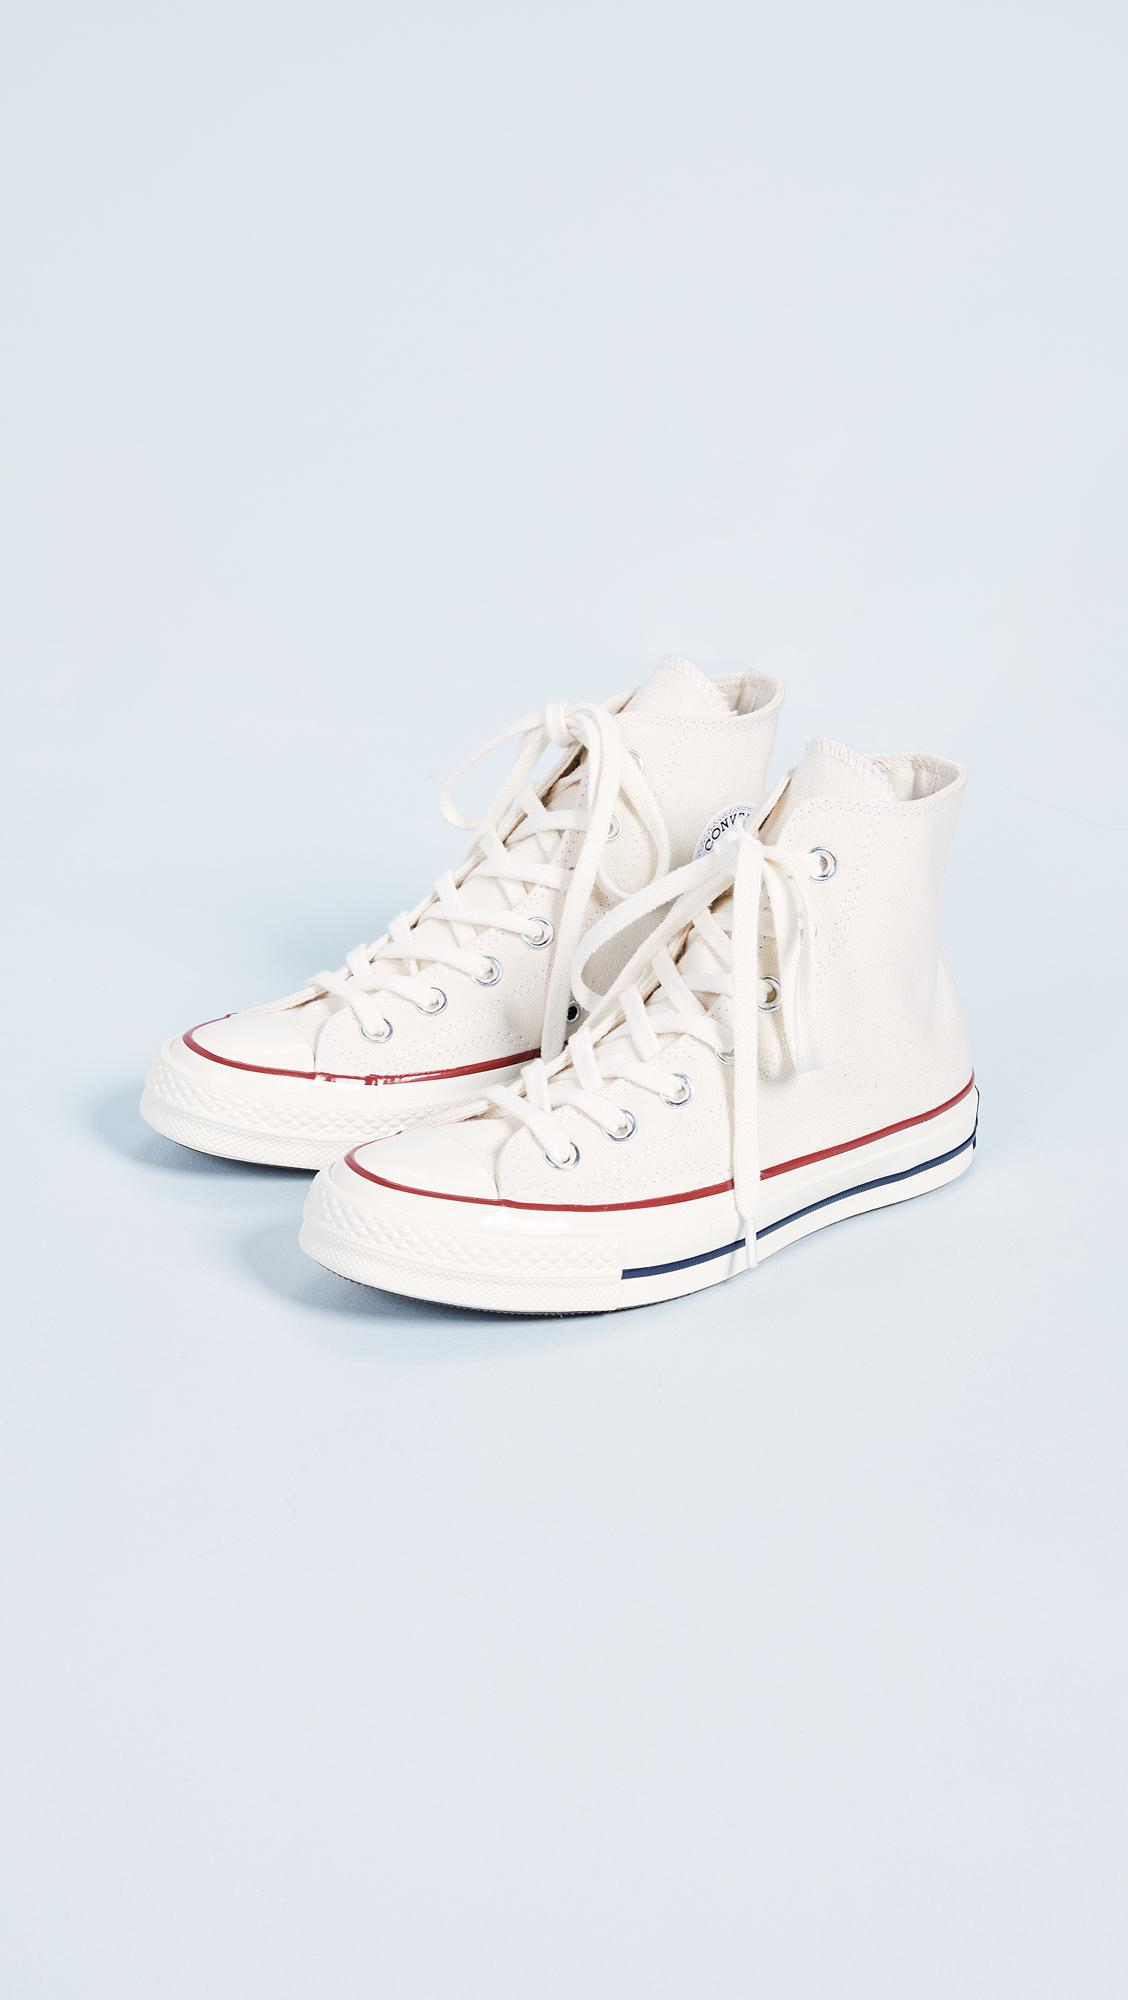 63425ee8ff3c Lyst - Converse All Star  70s High Top Sneakers in White